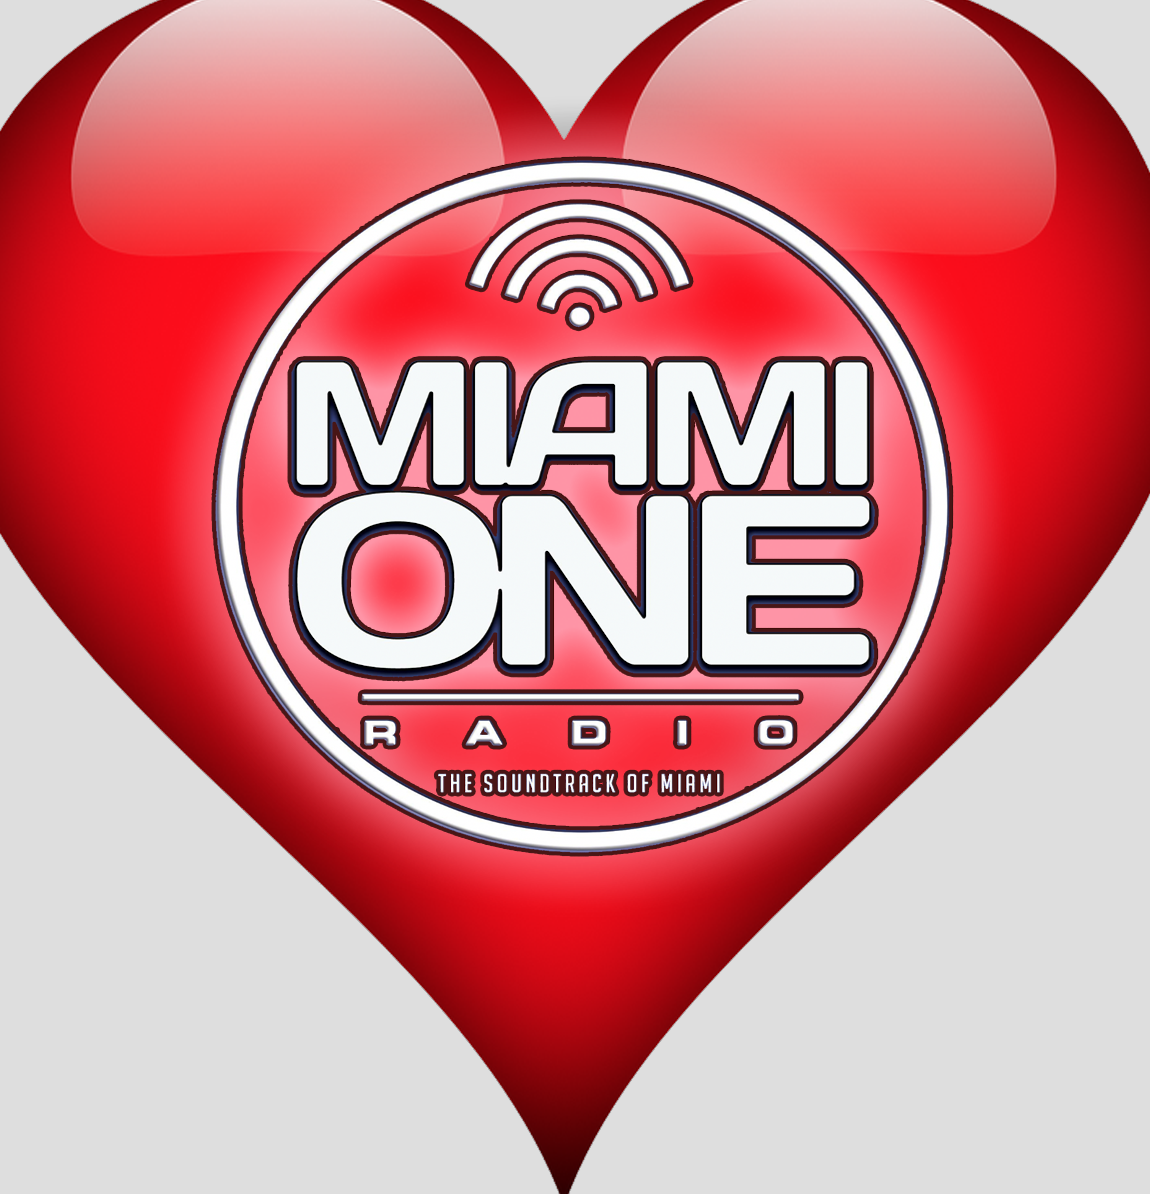 power love hour, power96, Love hour, MIami One radio, Tony The hitman